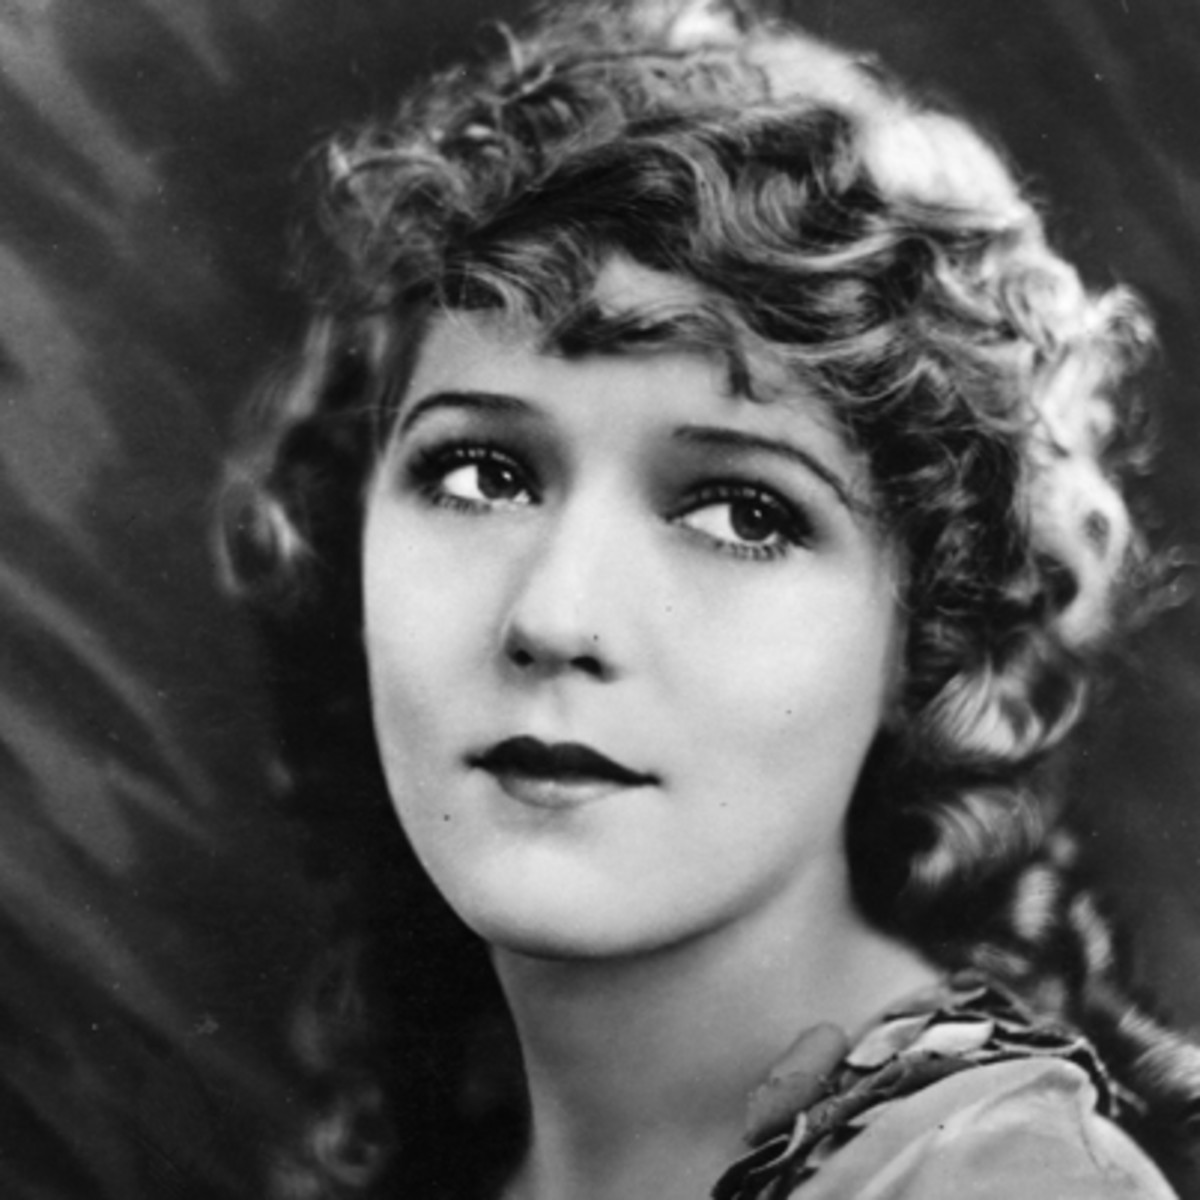 Mary Pickford   Screenwriter  Theater Actress  Producer  Film Actor     Mary Pickford   Screenwriter  Theater Actress  Producer  Film Actor Film  Actress  Film Actress  Actress   Biography